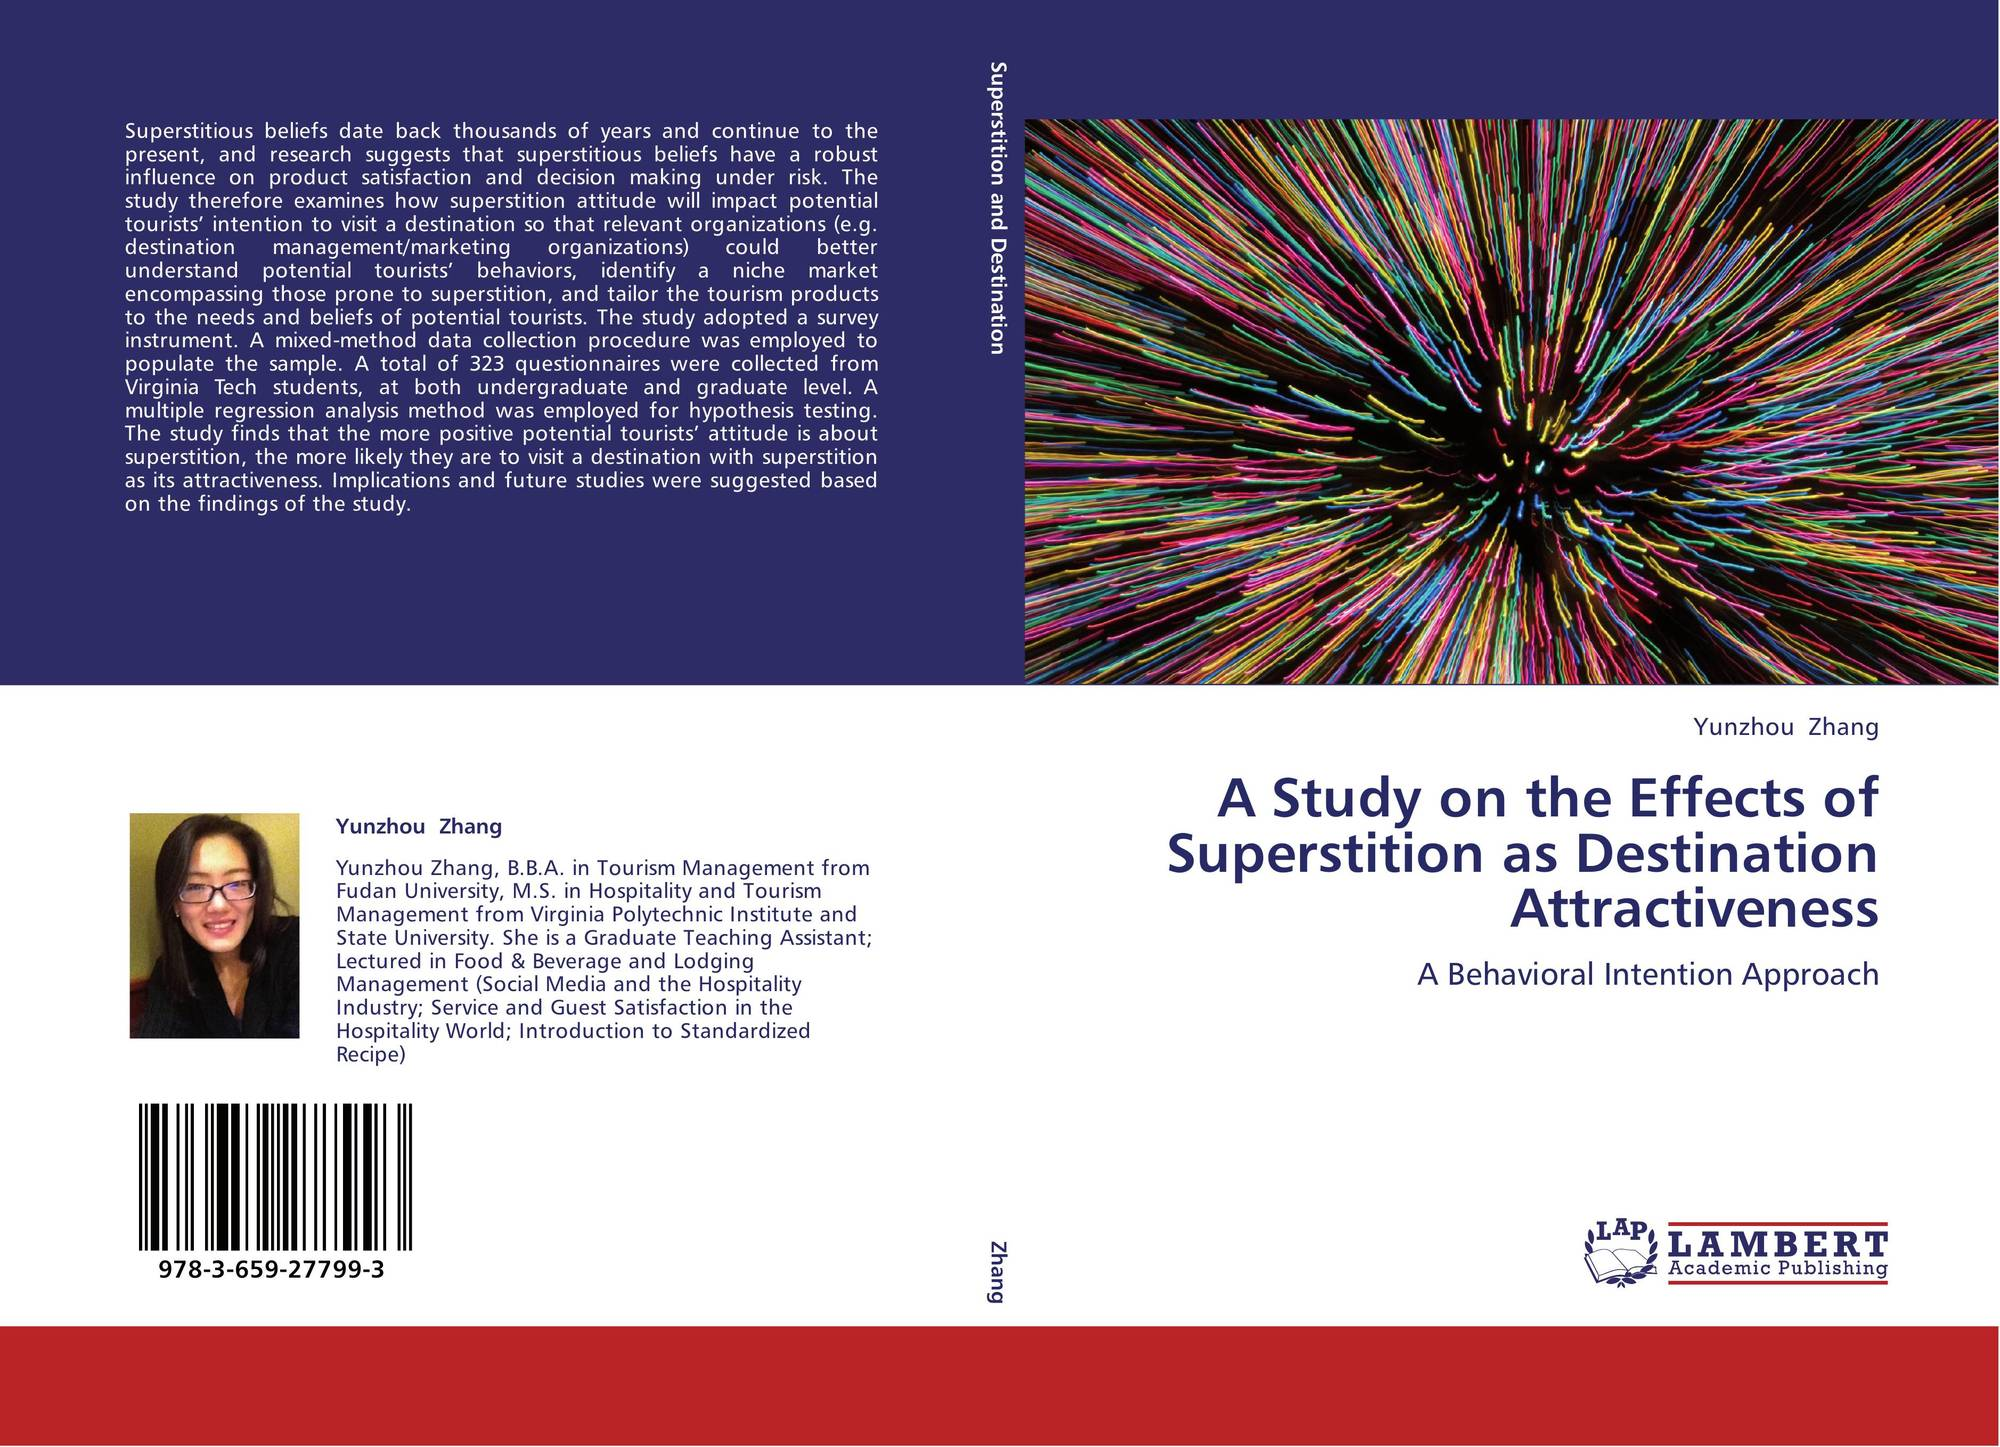 a description of the impact of superstition Superstition is a pejorative term for any belief or practice that is considered irrational: for example, if it arises from ignorance, a misunderstanding of science or causality, a positive belief in fate or magic, or fear of that which is unknown.